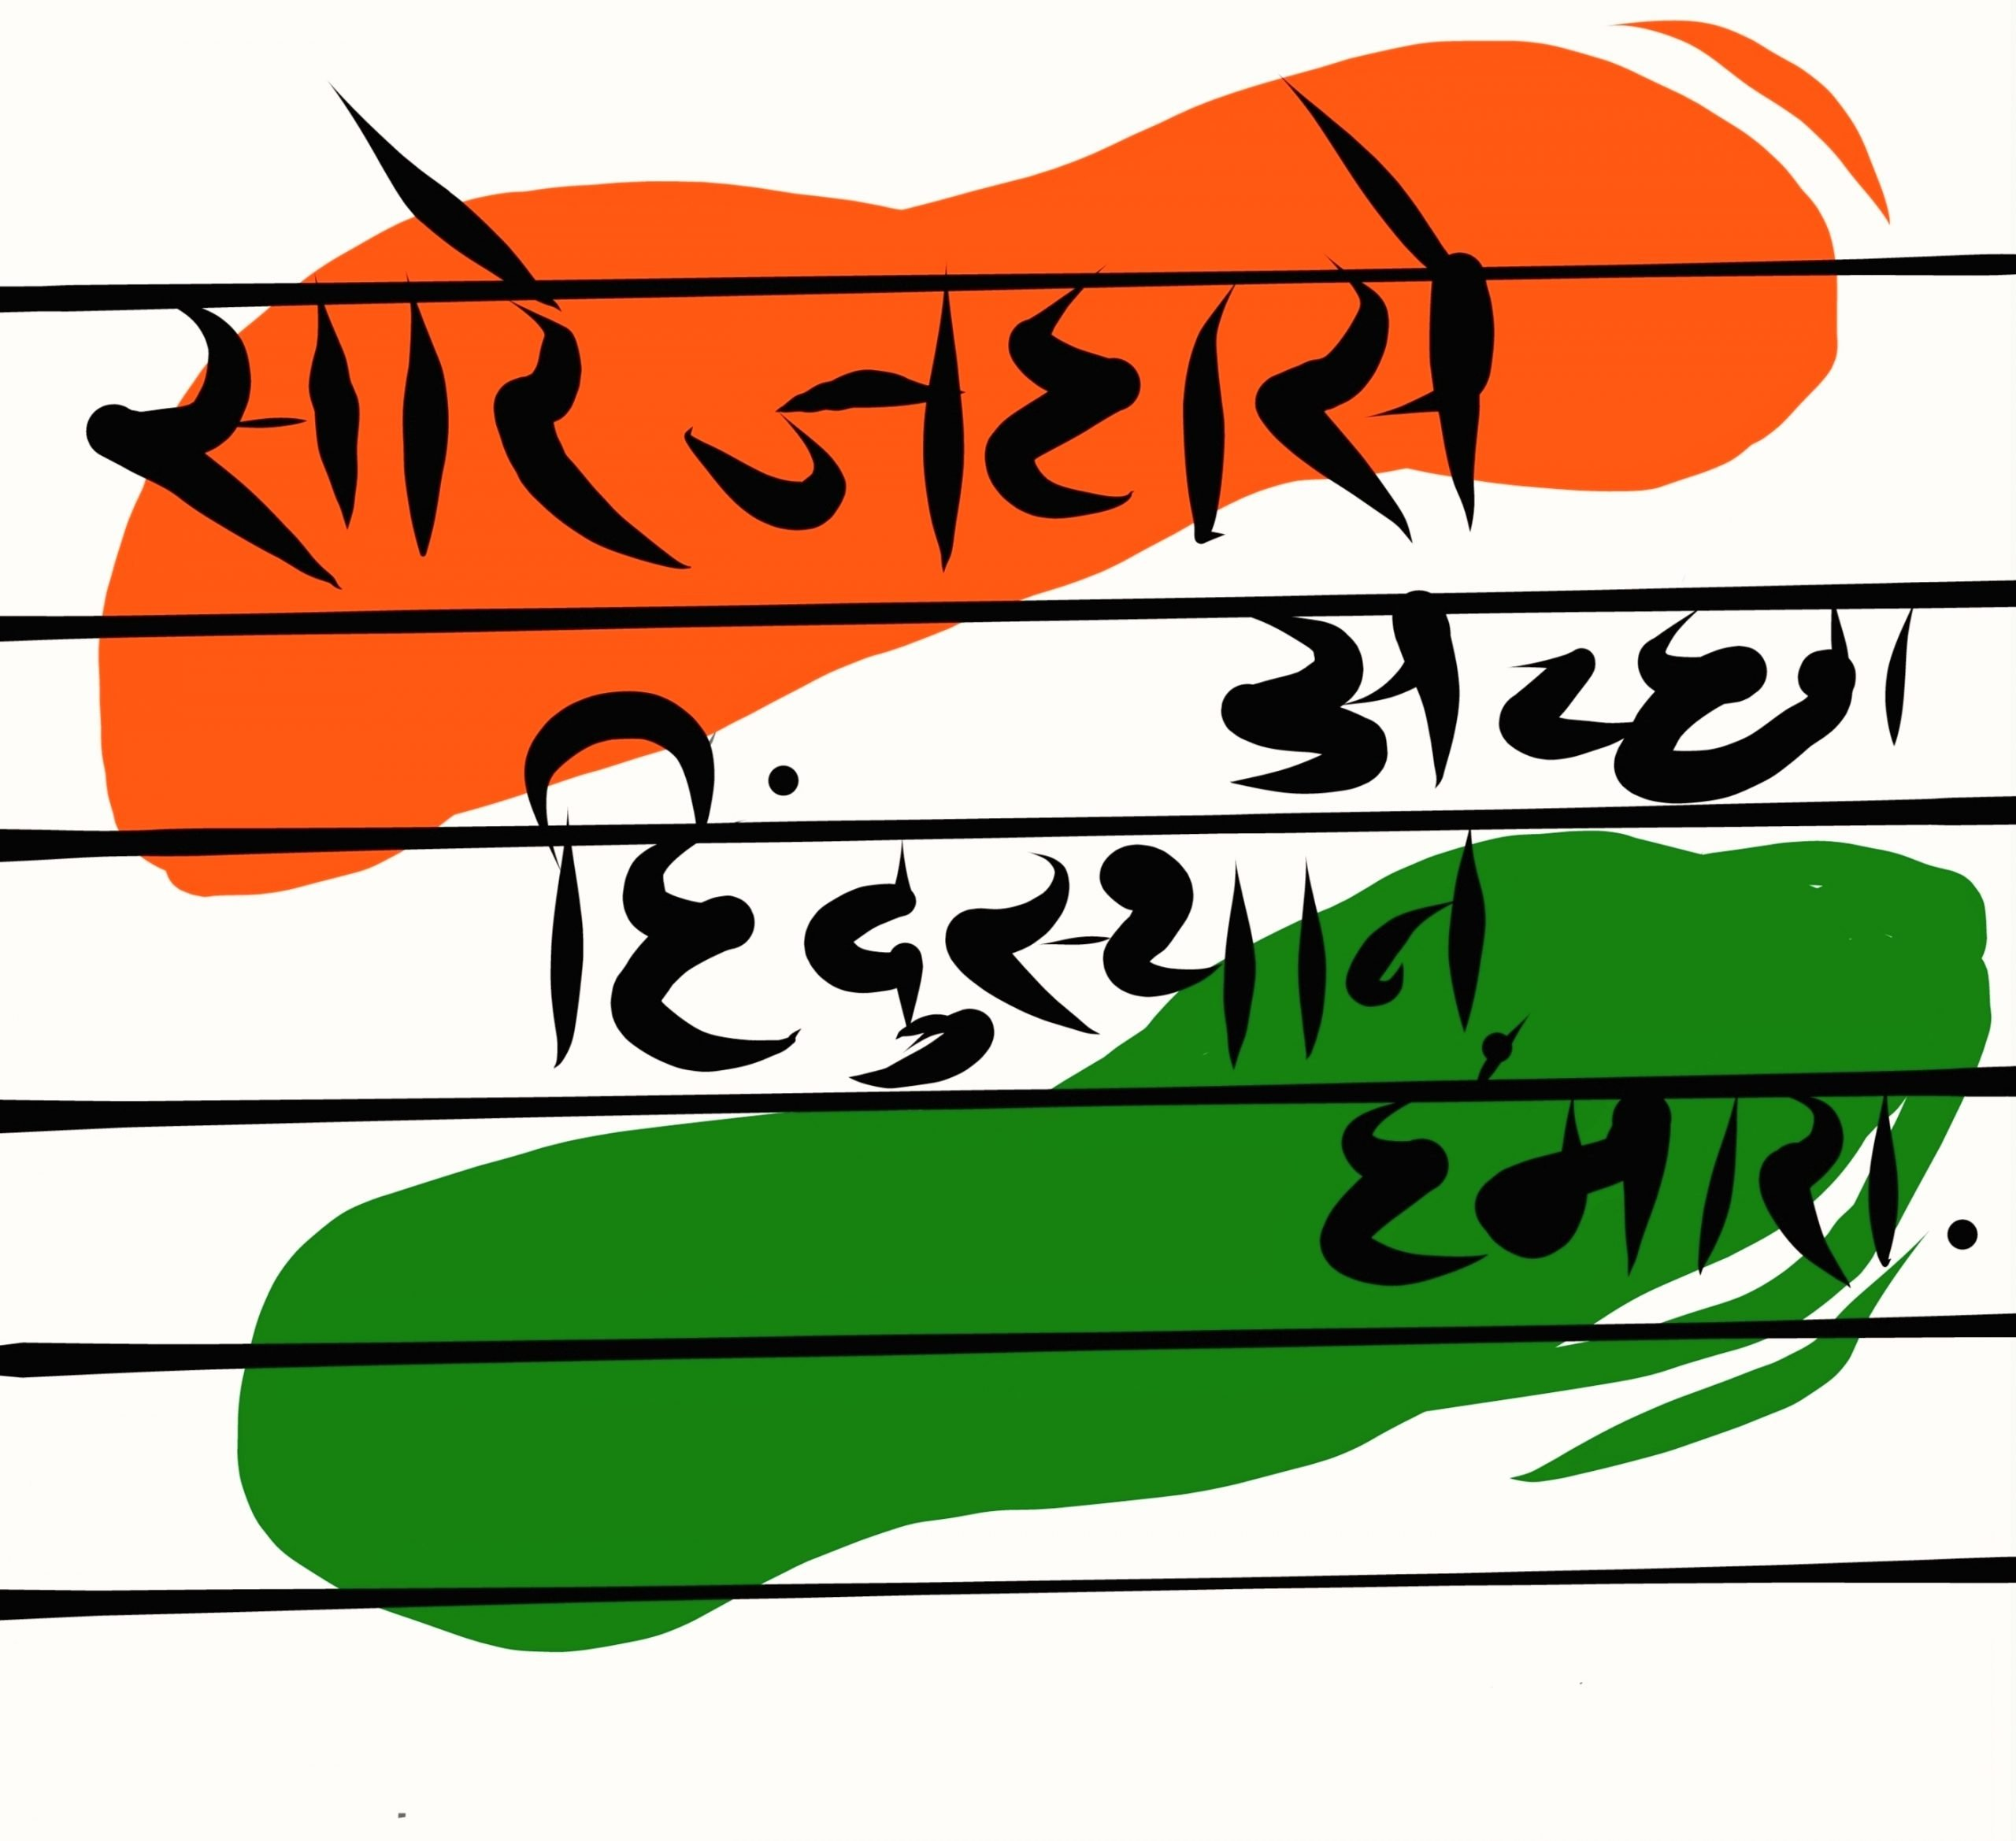 Patriotic lines written in Hindi language